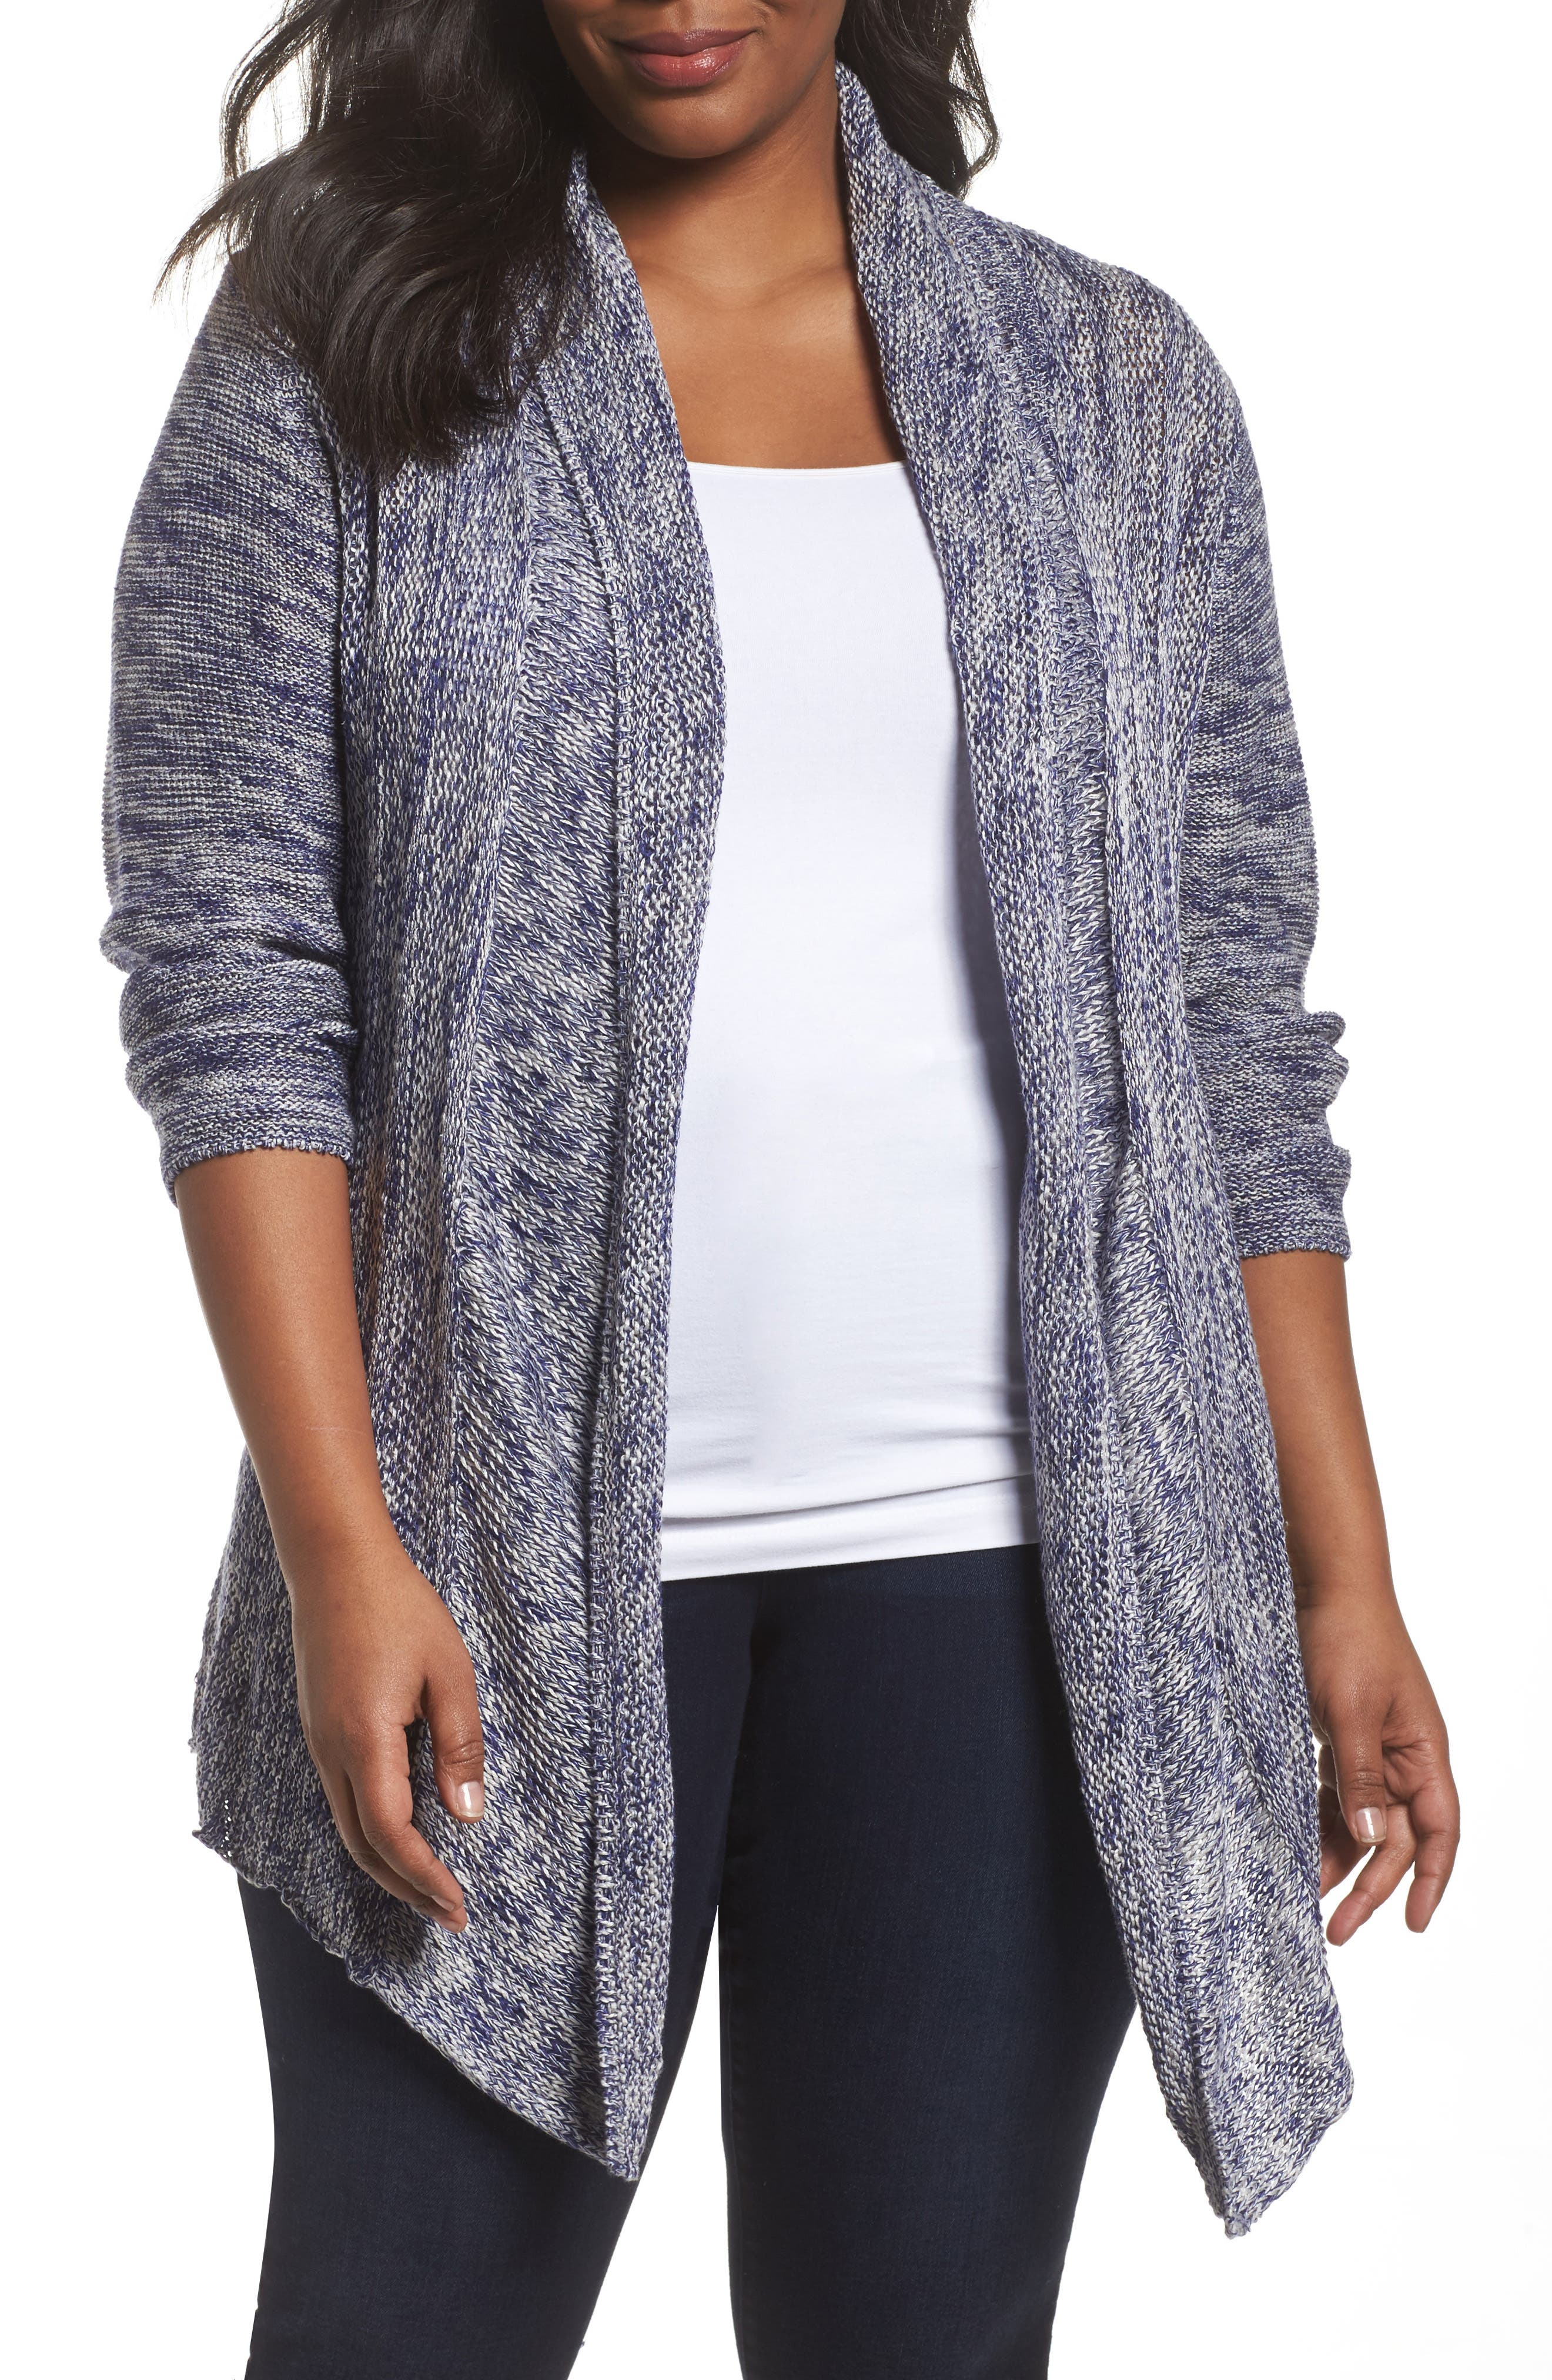 Weather Mix Cardigan,                             Main thumbnail 1, color,                             Multi